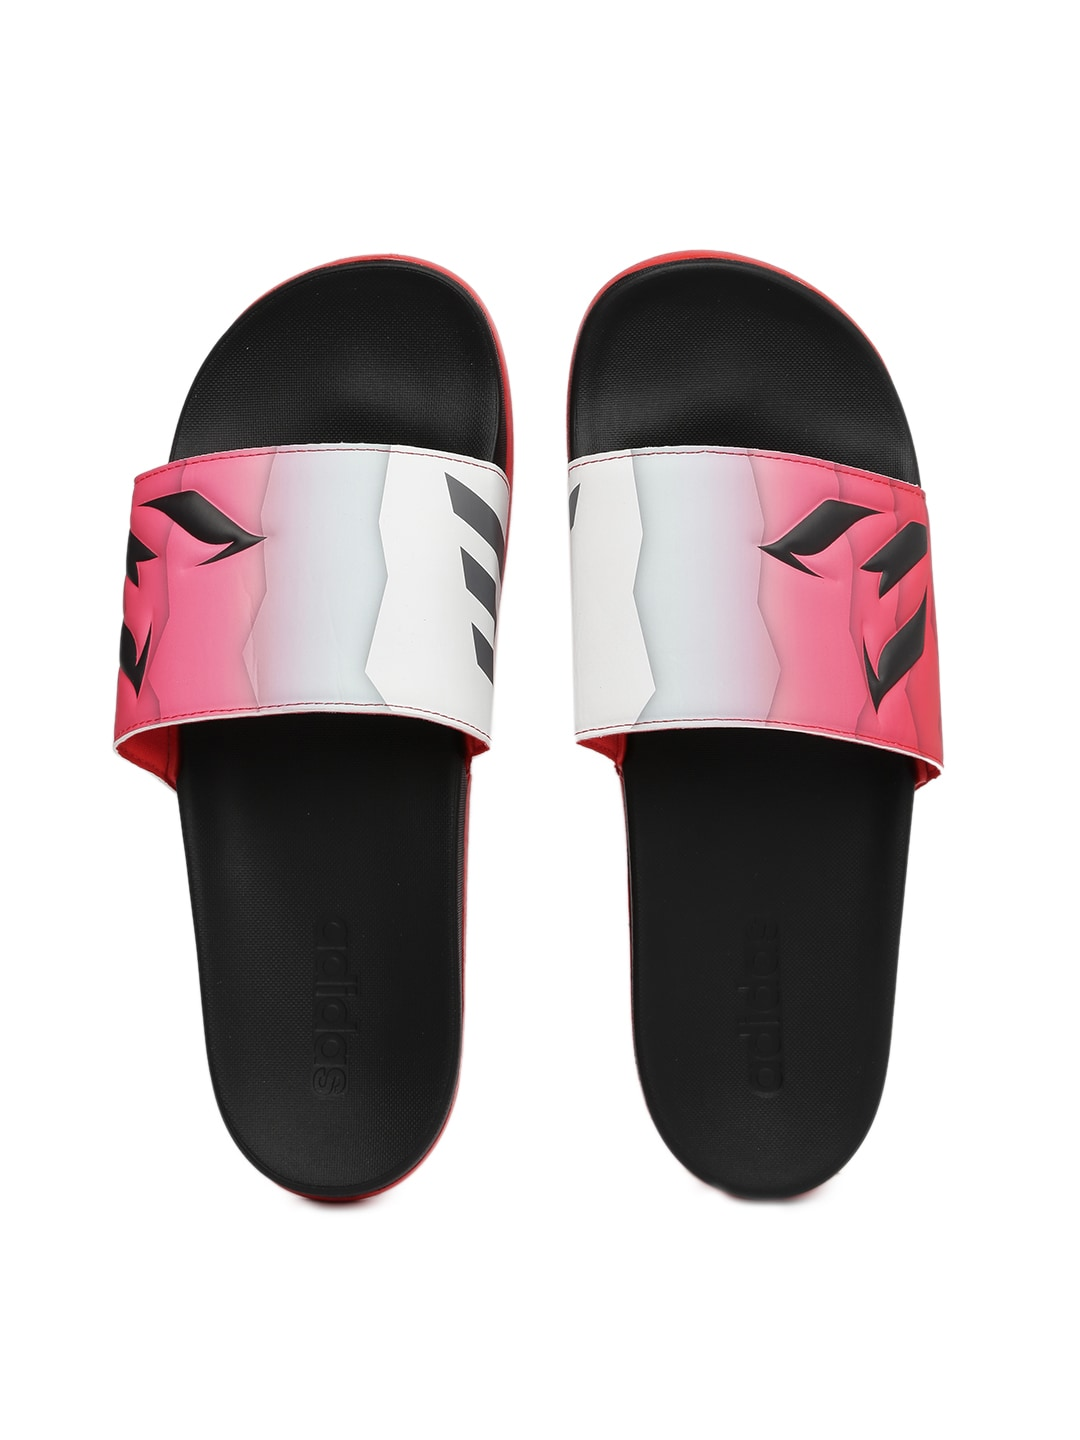 8a08d72ffa9 Adidas aq3793 Men Red Fc Bayern Flip Flops - Best Price in India ...